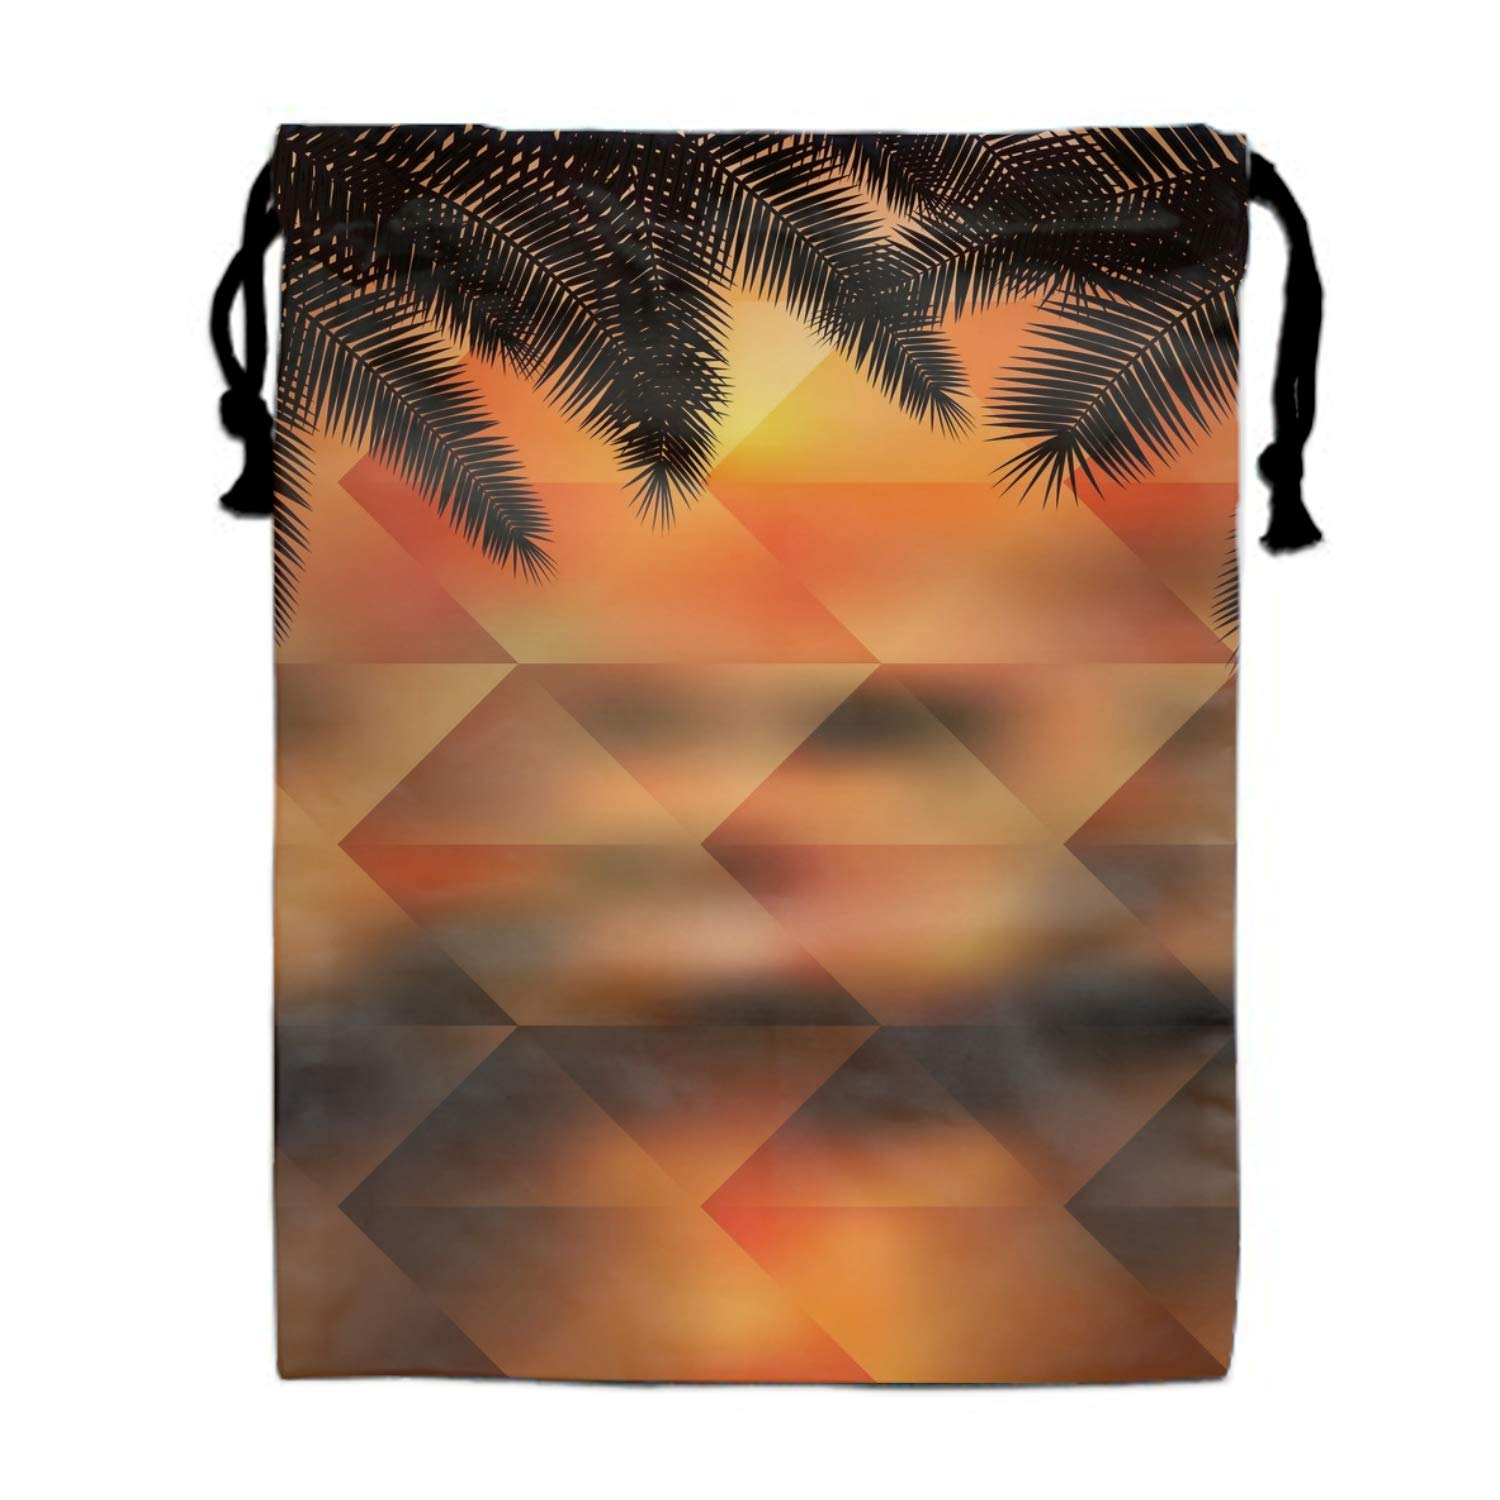 Palmtree Geometric Drawstring Bags Waterproof Party Favors Pouch Tote Bag Sack For Girls Boys